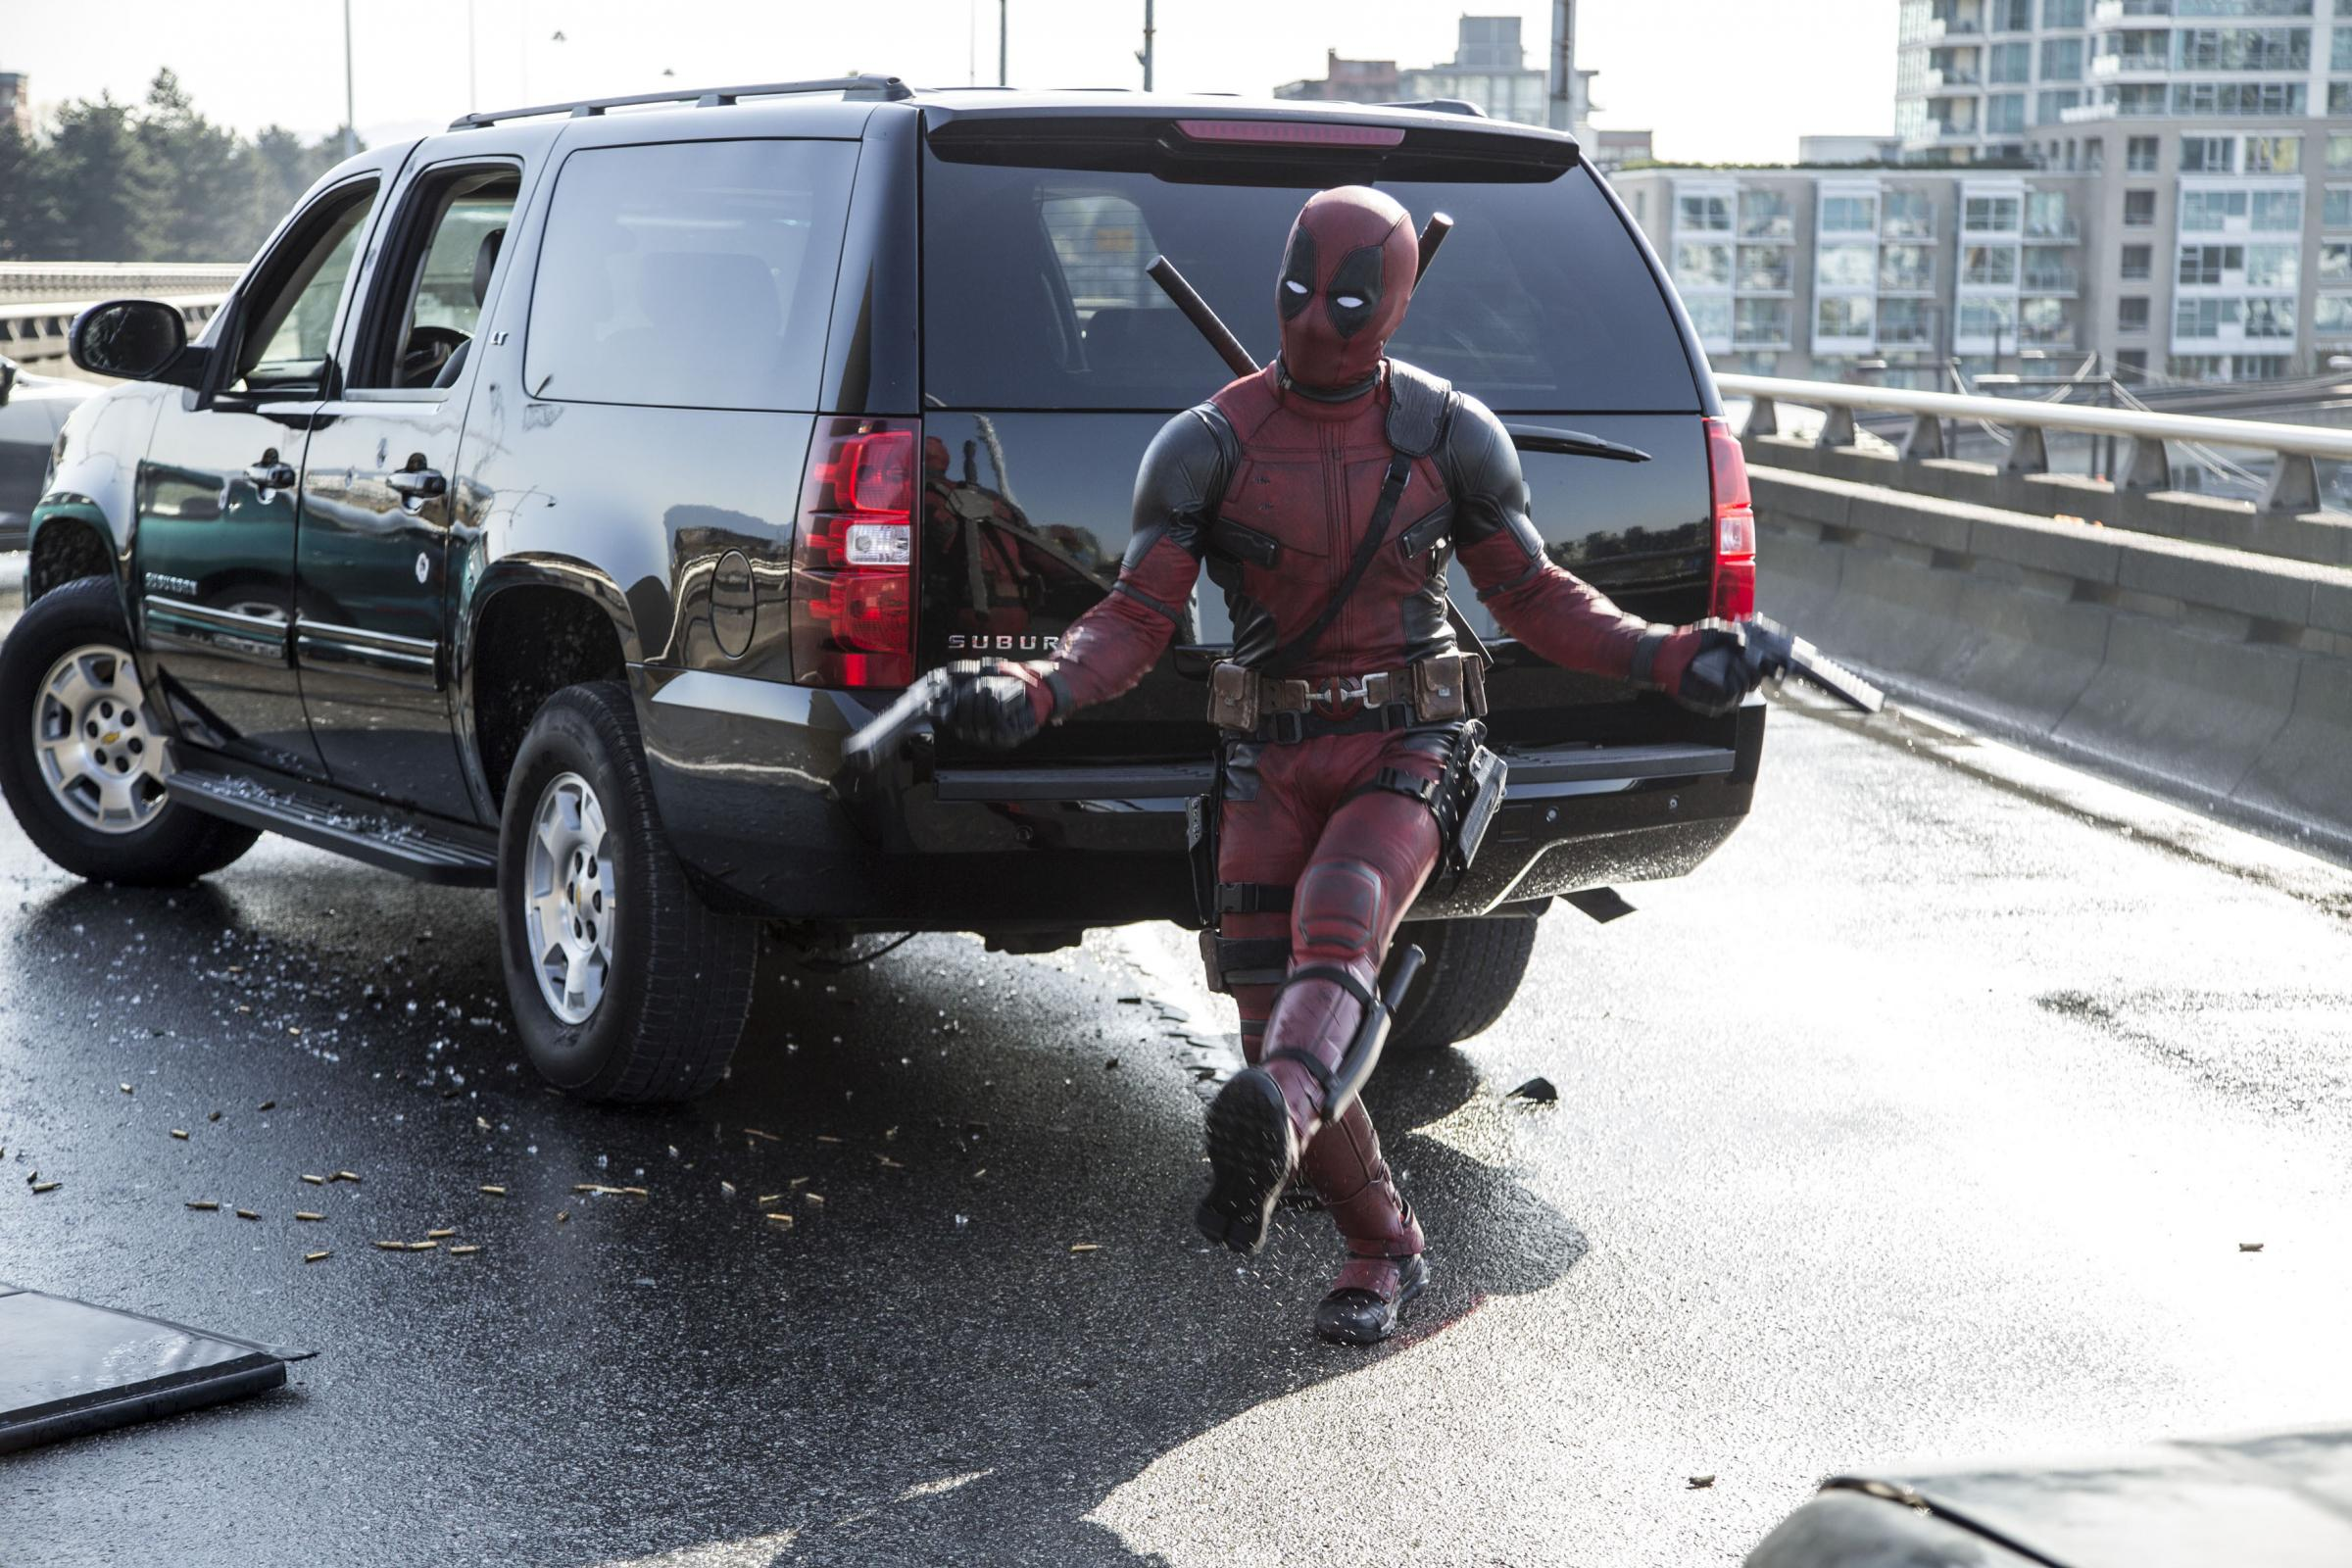 A 'genius' made Ryan Reynolds' 'penis look perfect' in 'Deadpool'